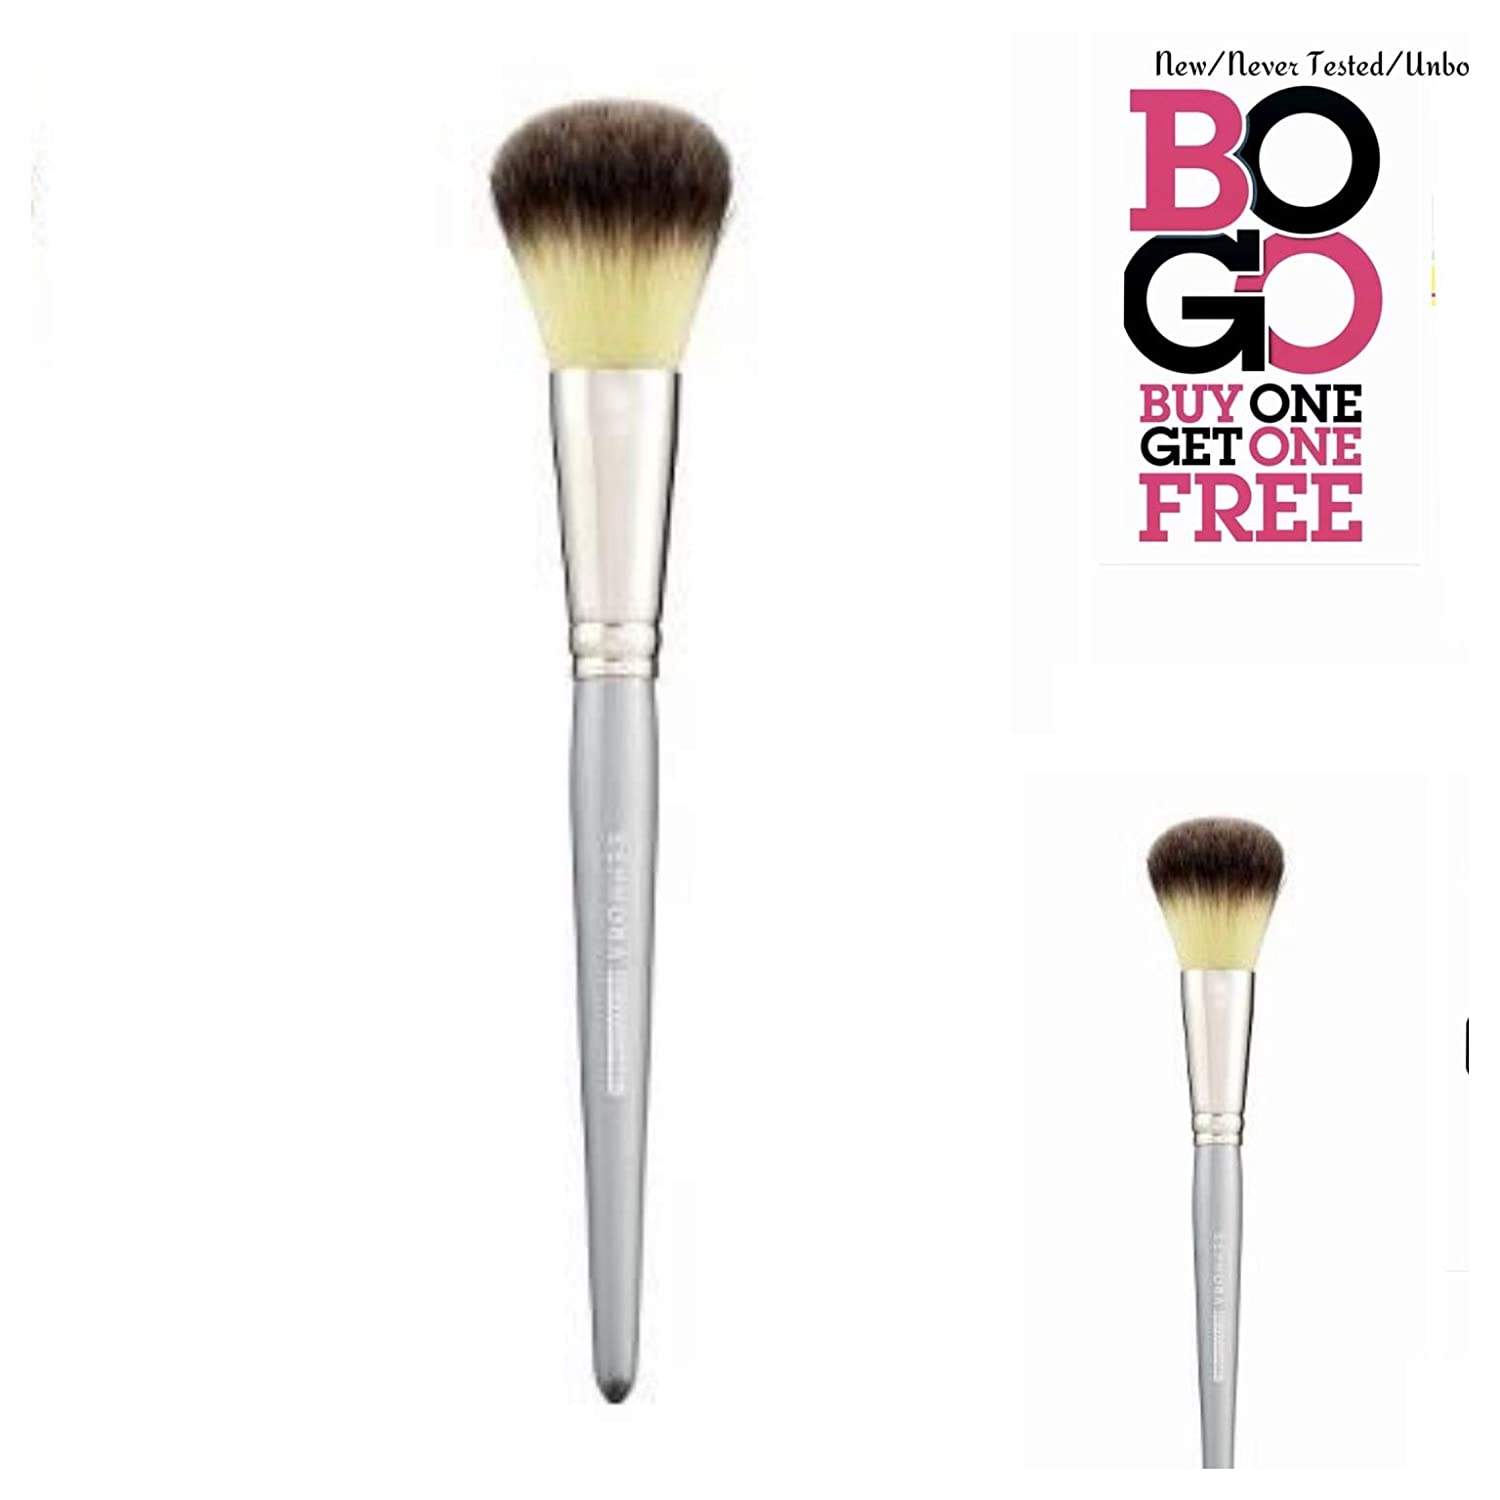 Sephora Collection Pro Airbrush #55 cruelty-free makeup brush